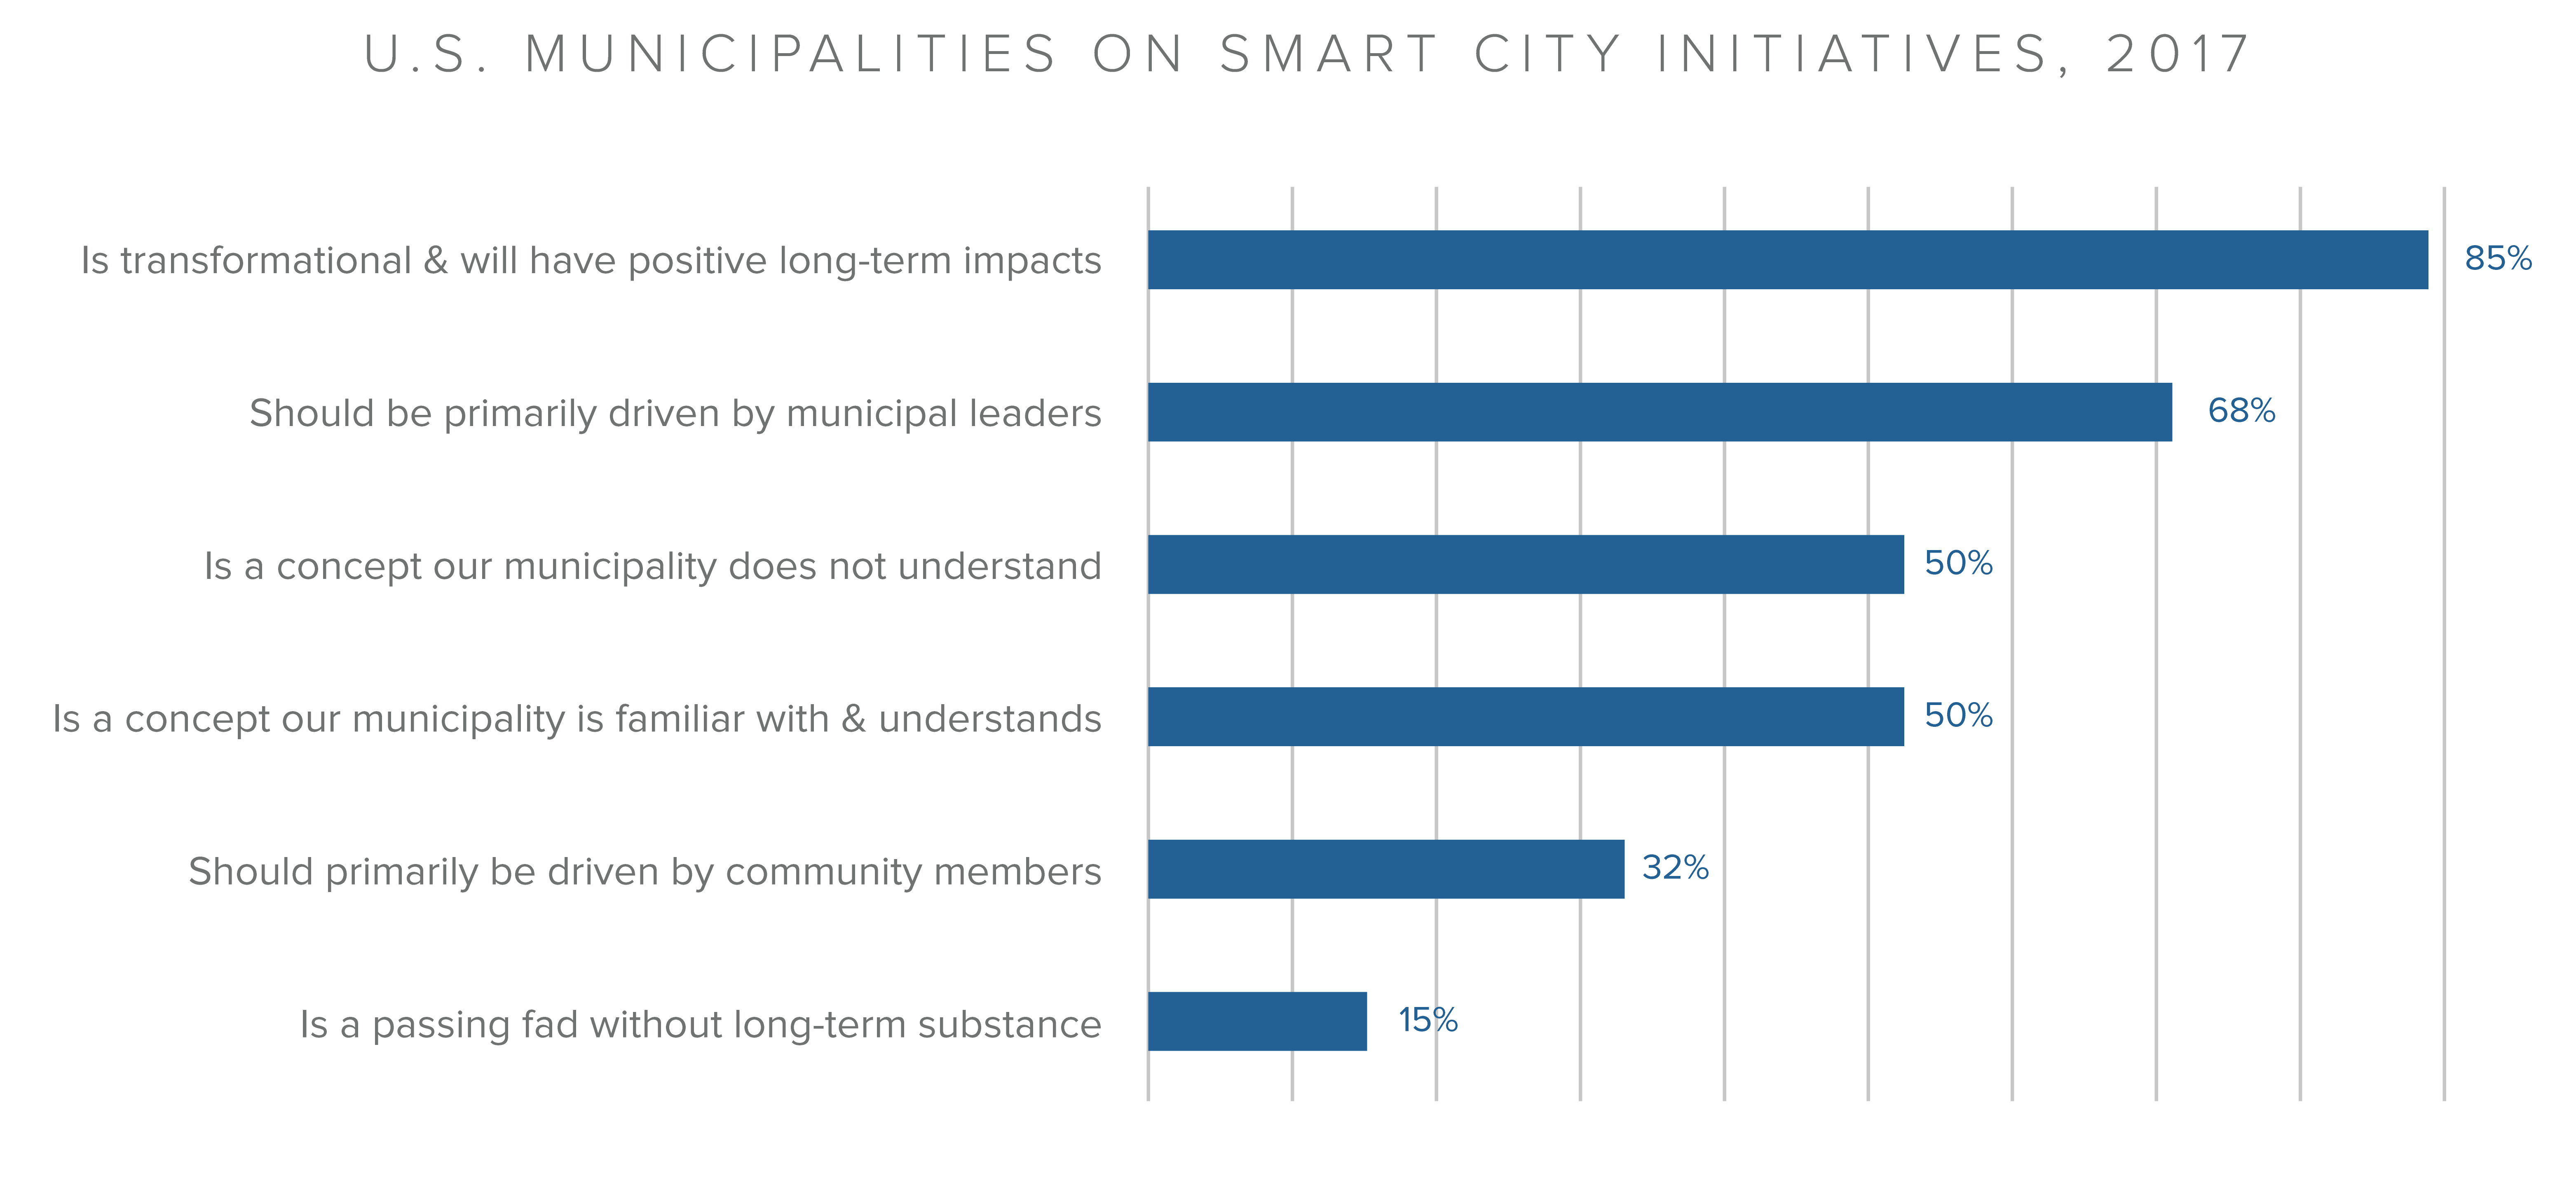 hw-smartcitiesgraphics-0201-04.png